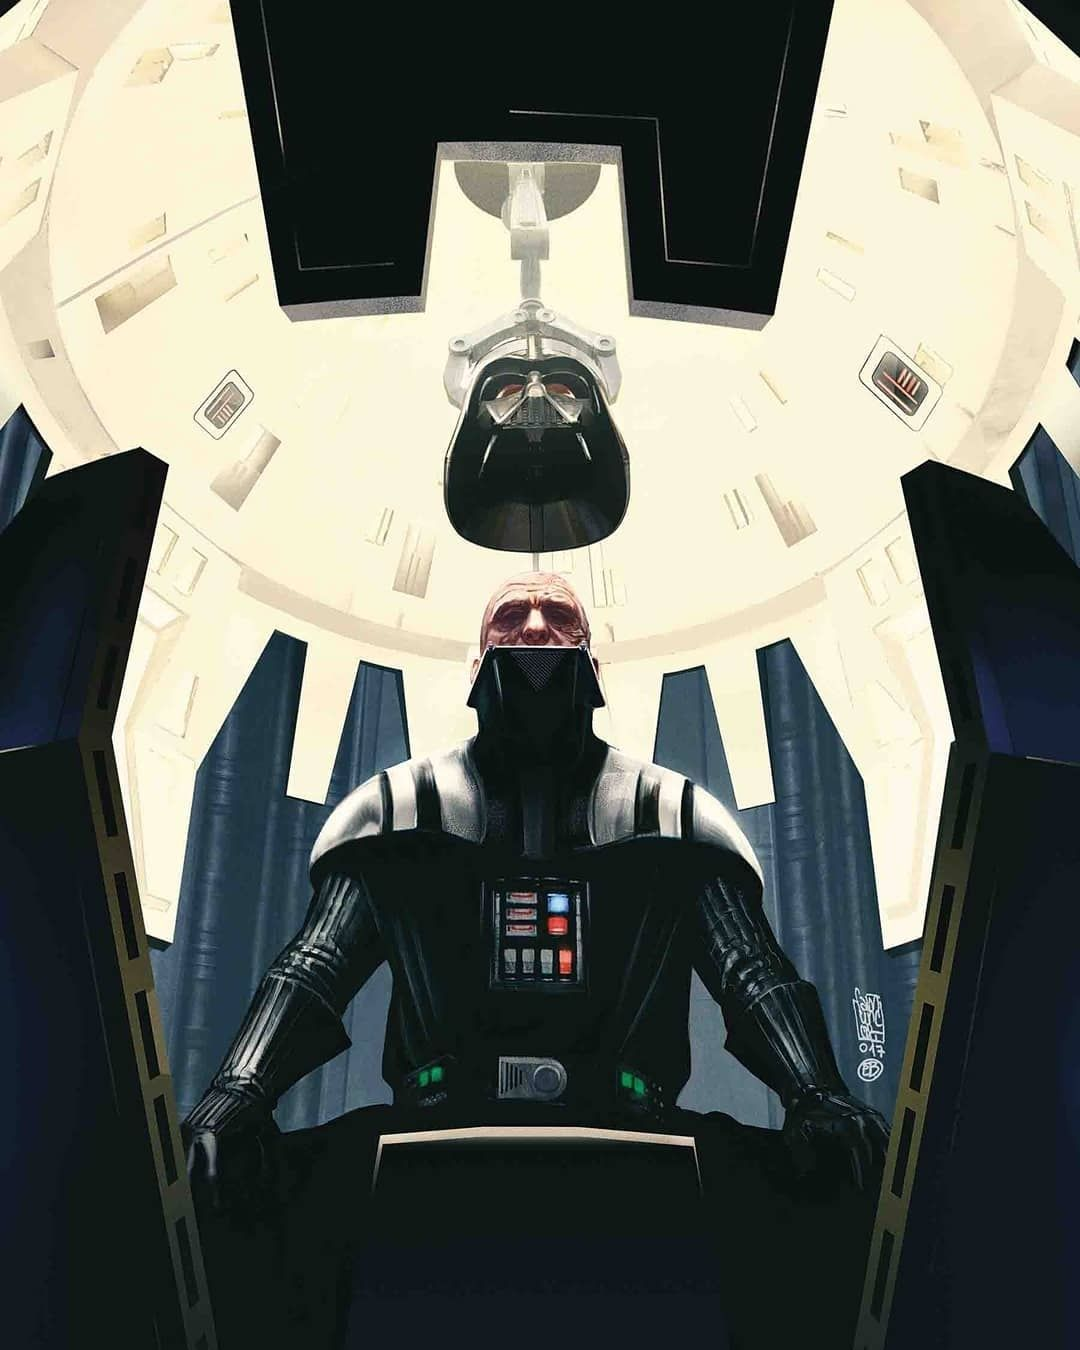 Darth Vader's Meditation Chamber. How did this help Anakin ...